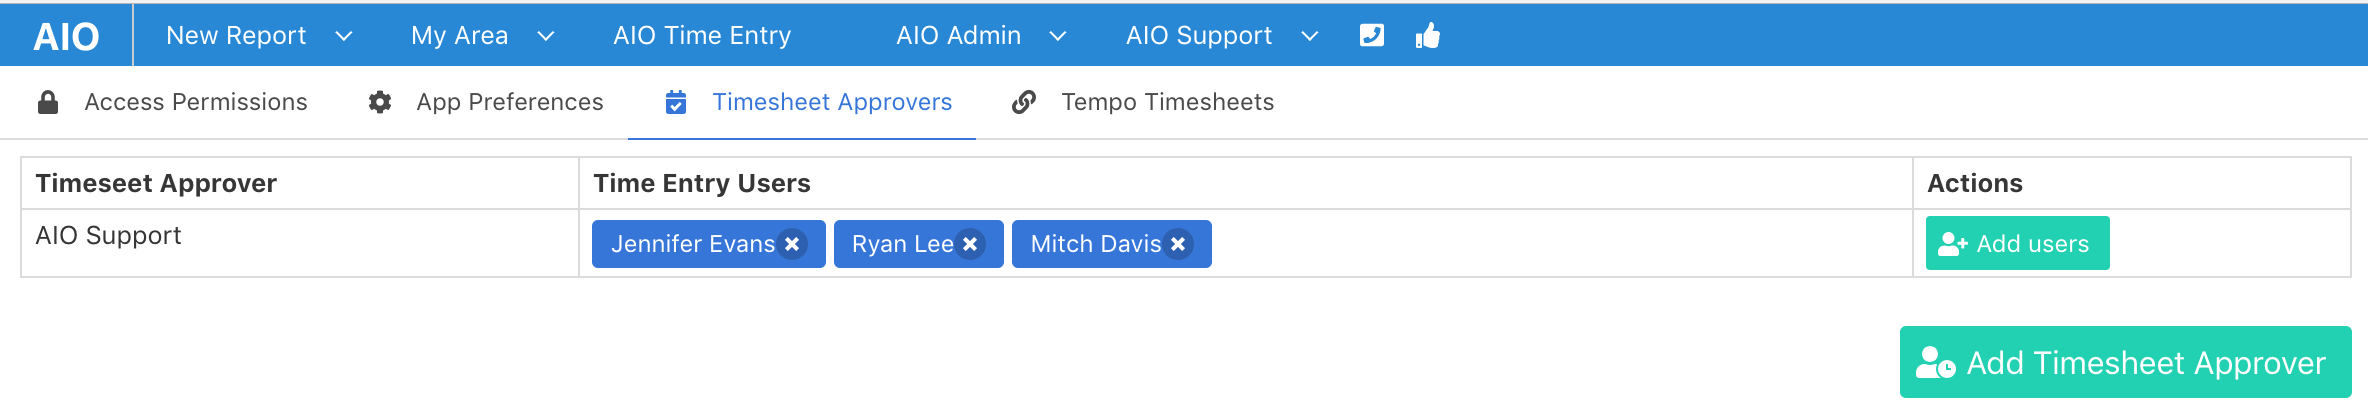 how does timesheet approval work aio support